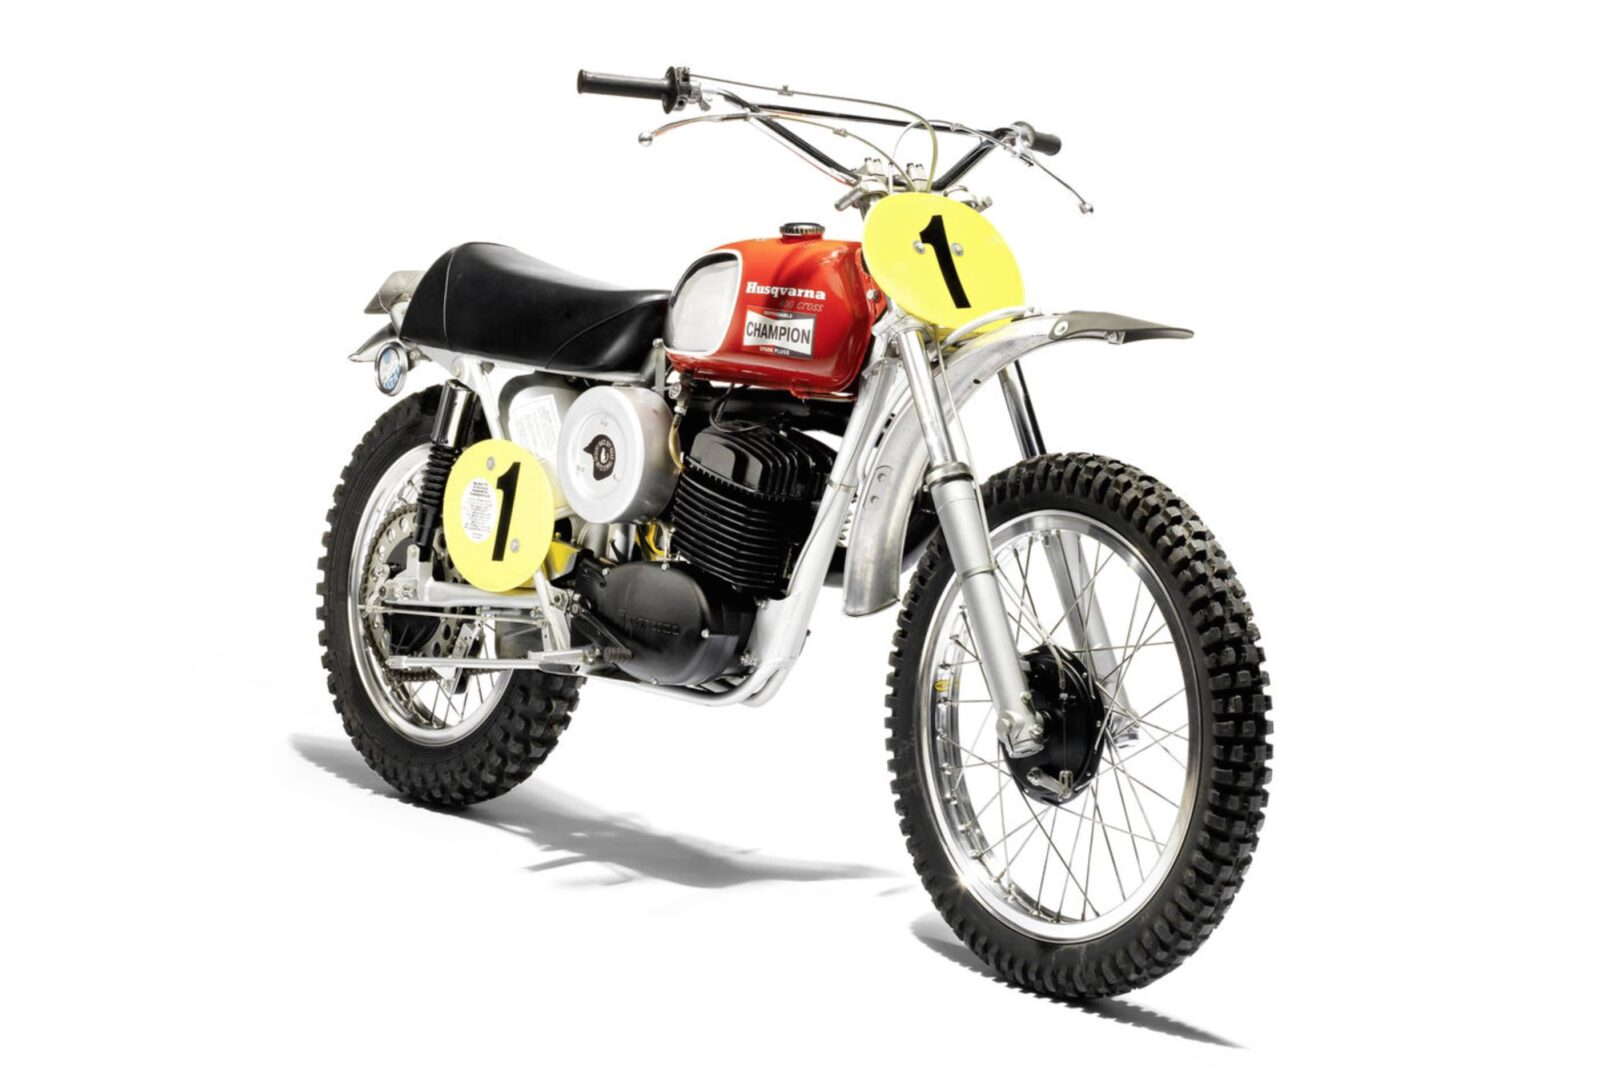 Husqvarna 400 Cross Front 1600x1076 - Husqvarna 400 Cross